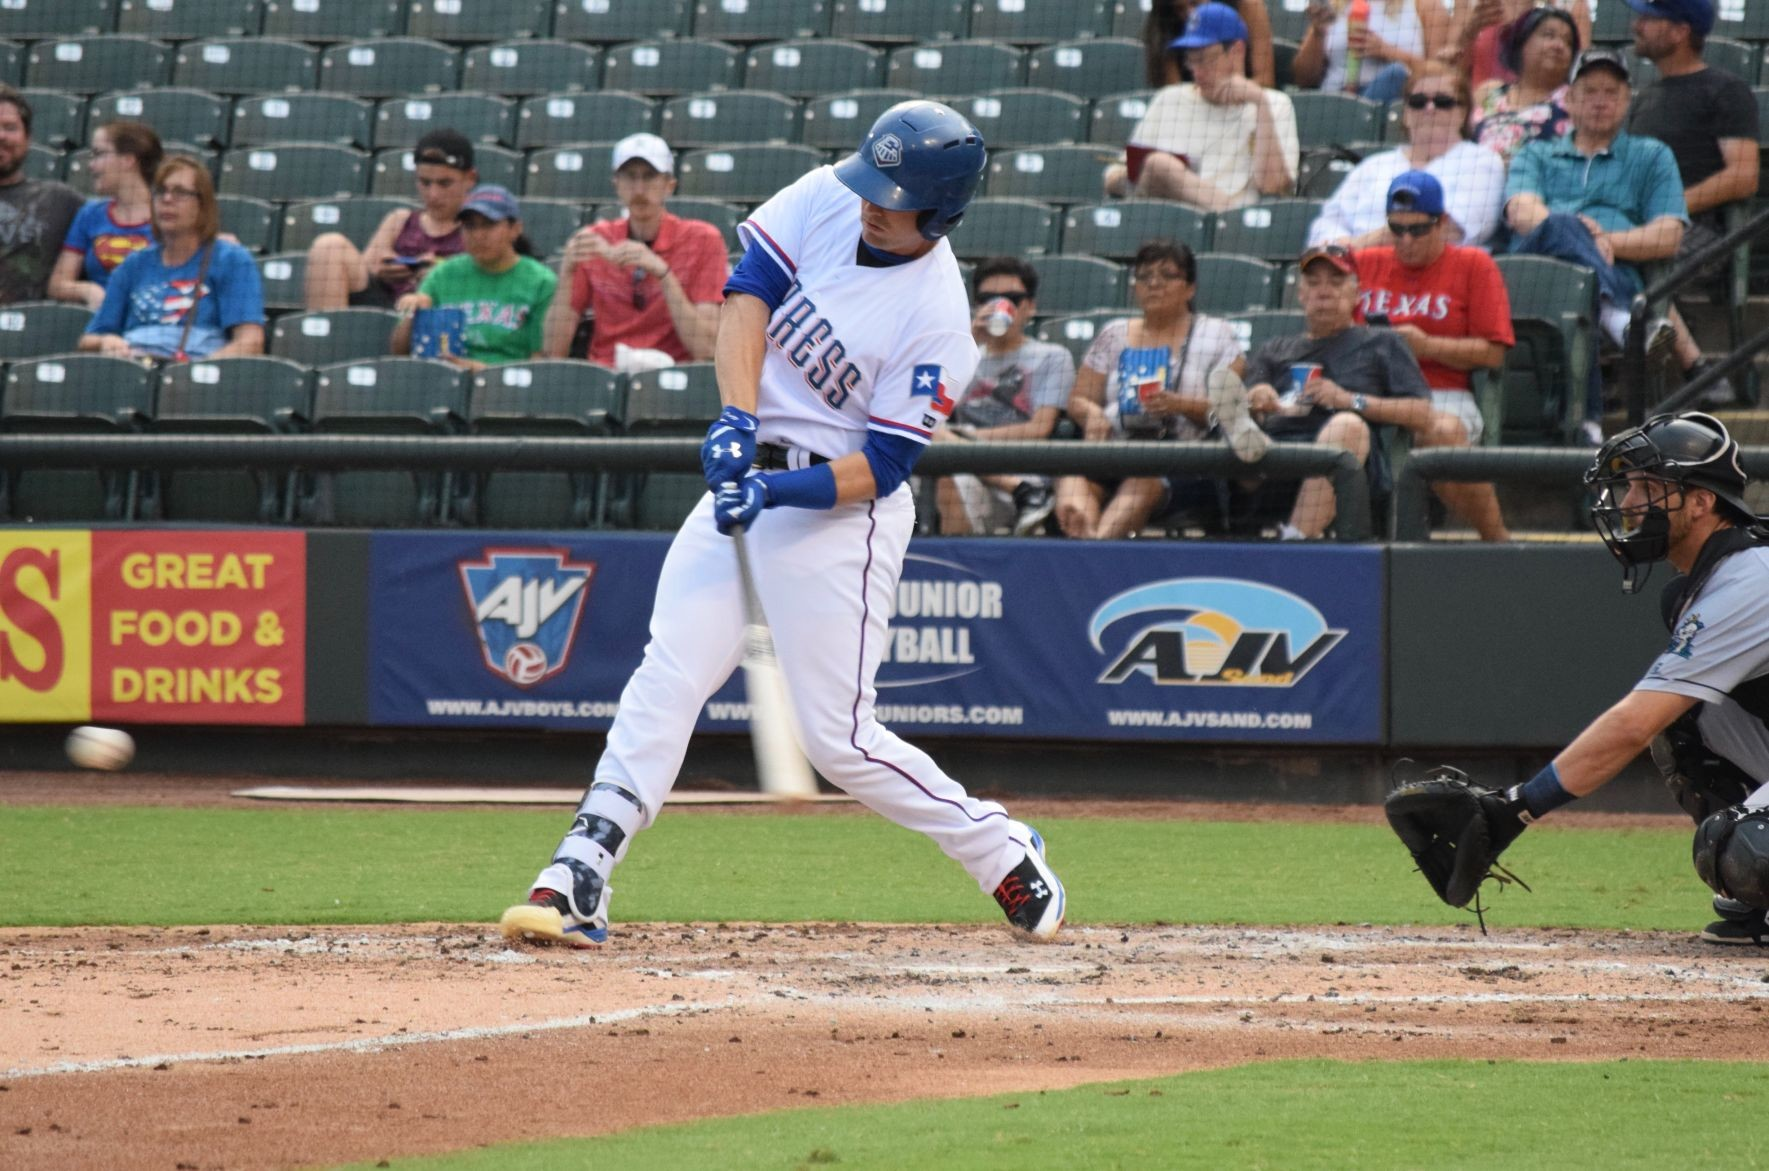 Brett Nicholas has the second best batting average on the Express this season in 69 appearances. He's going back to the major leagues after two stints with the Rangers in 2016.